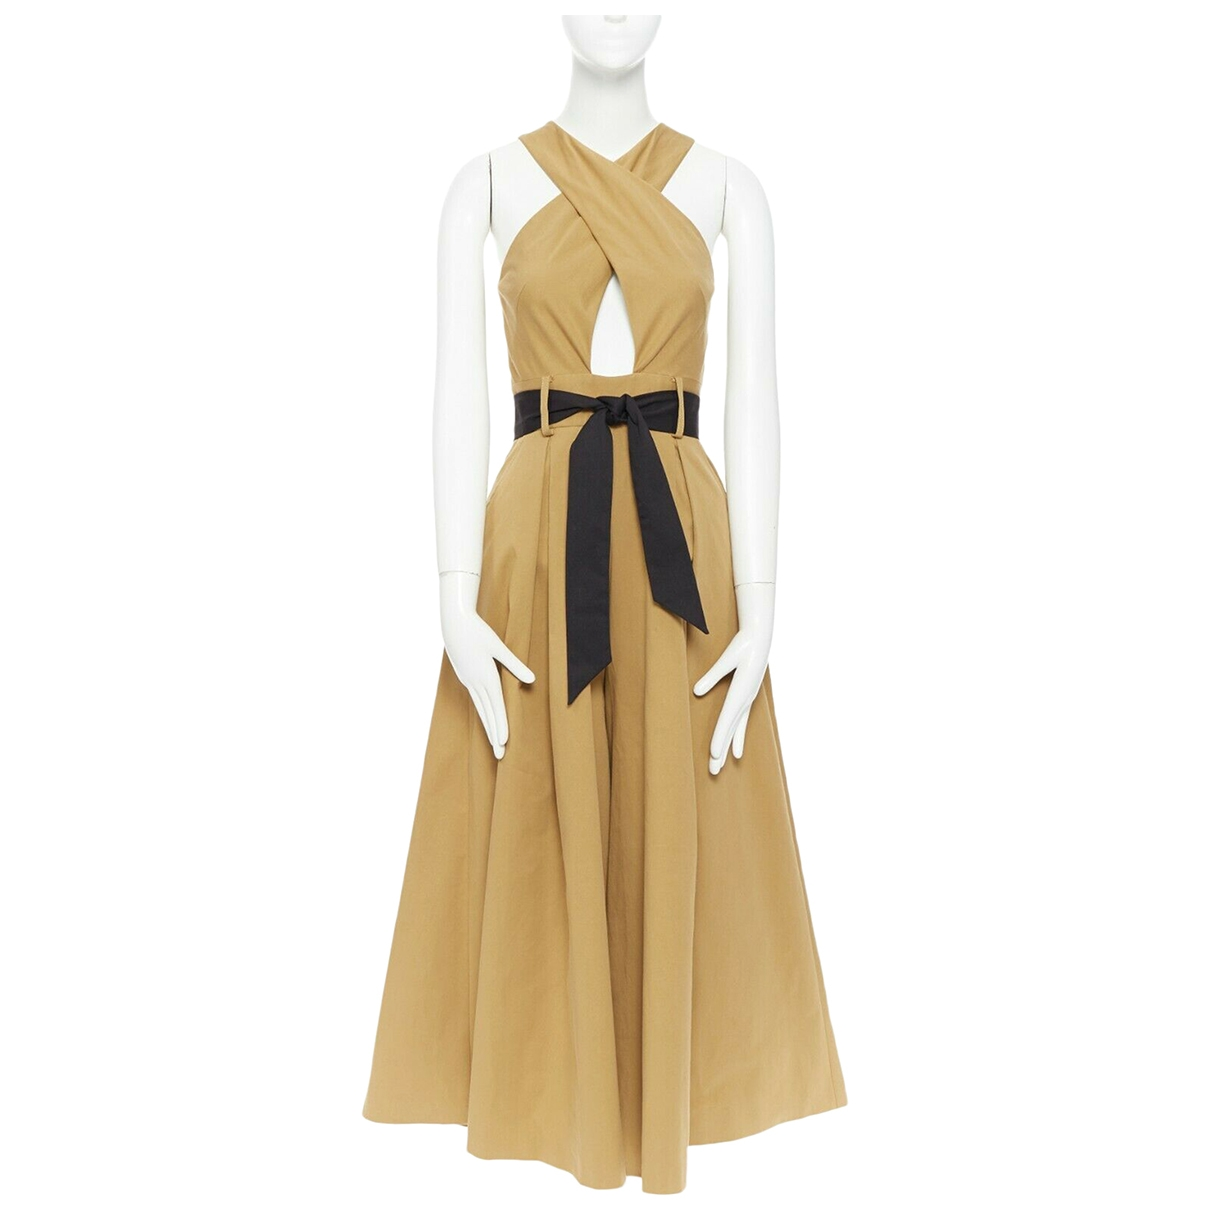 Temperley London \N Kleid in  Beige Baumwolle